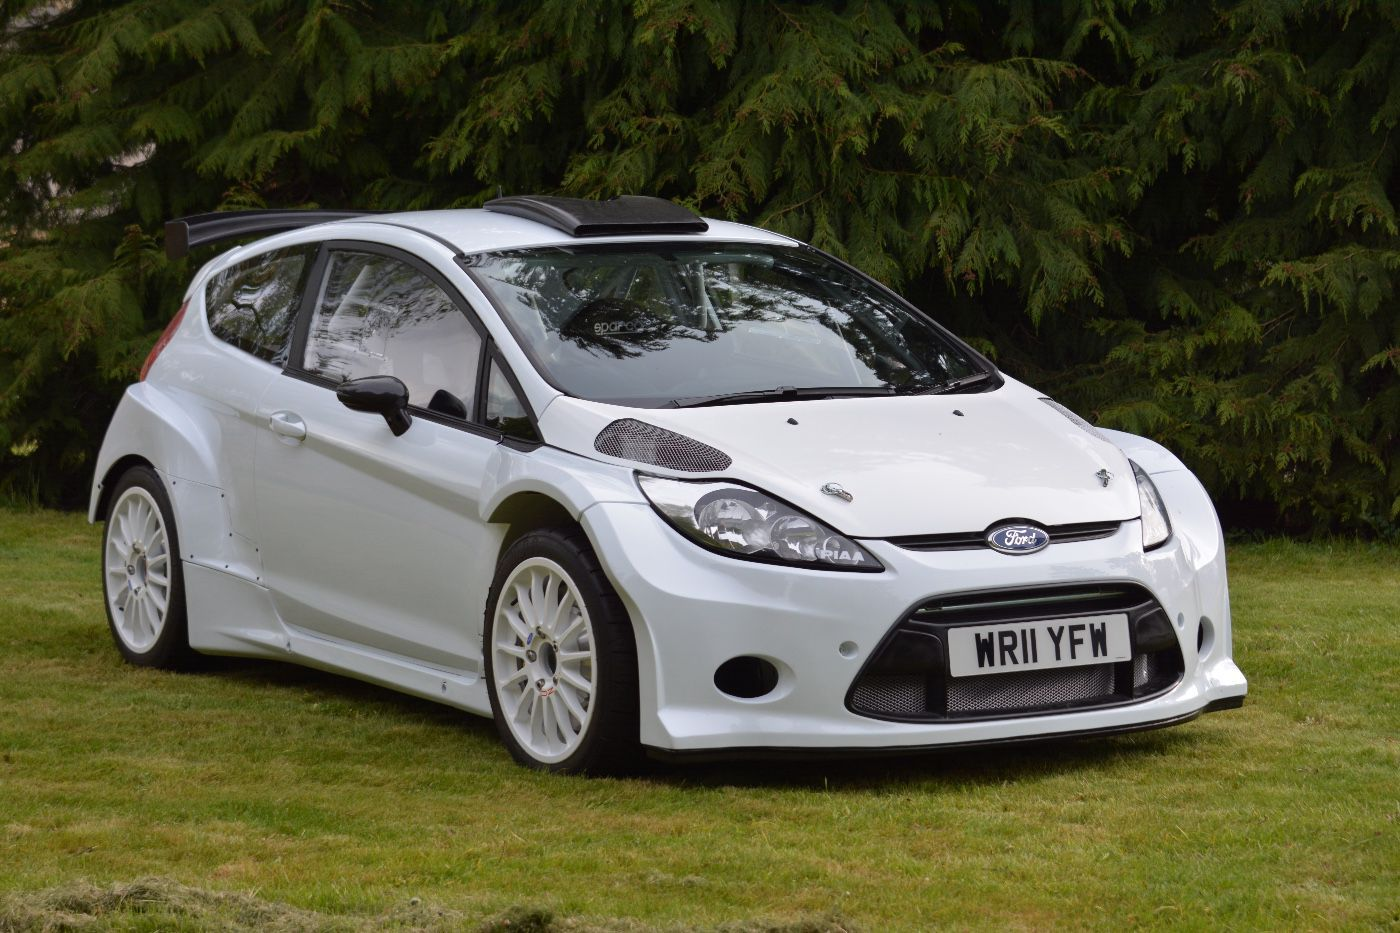 New Build Ford Fiesta V6 4wd Built To A Very High Standard And